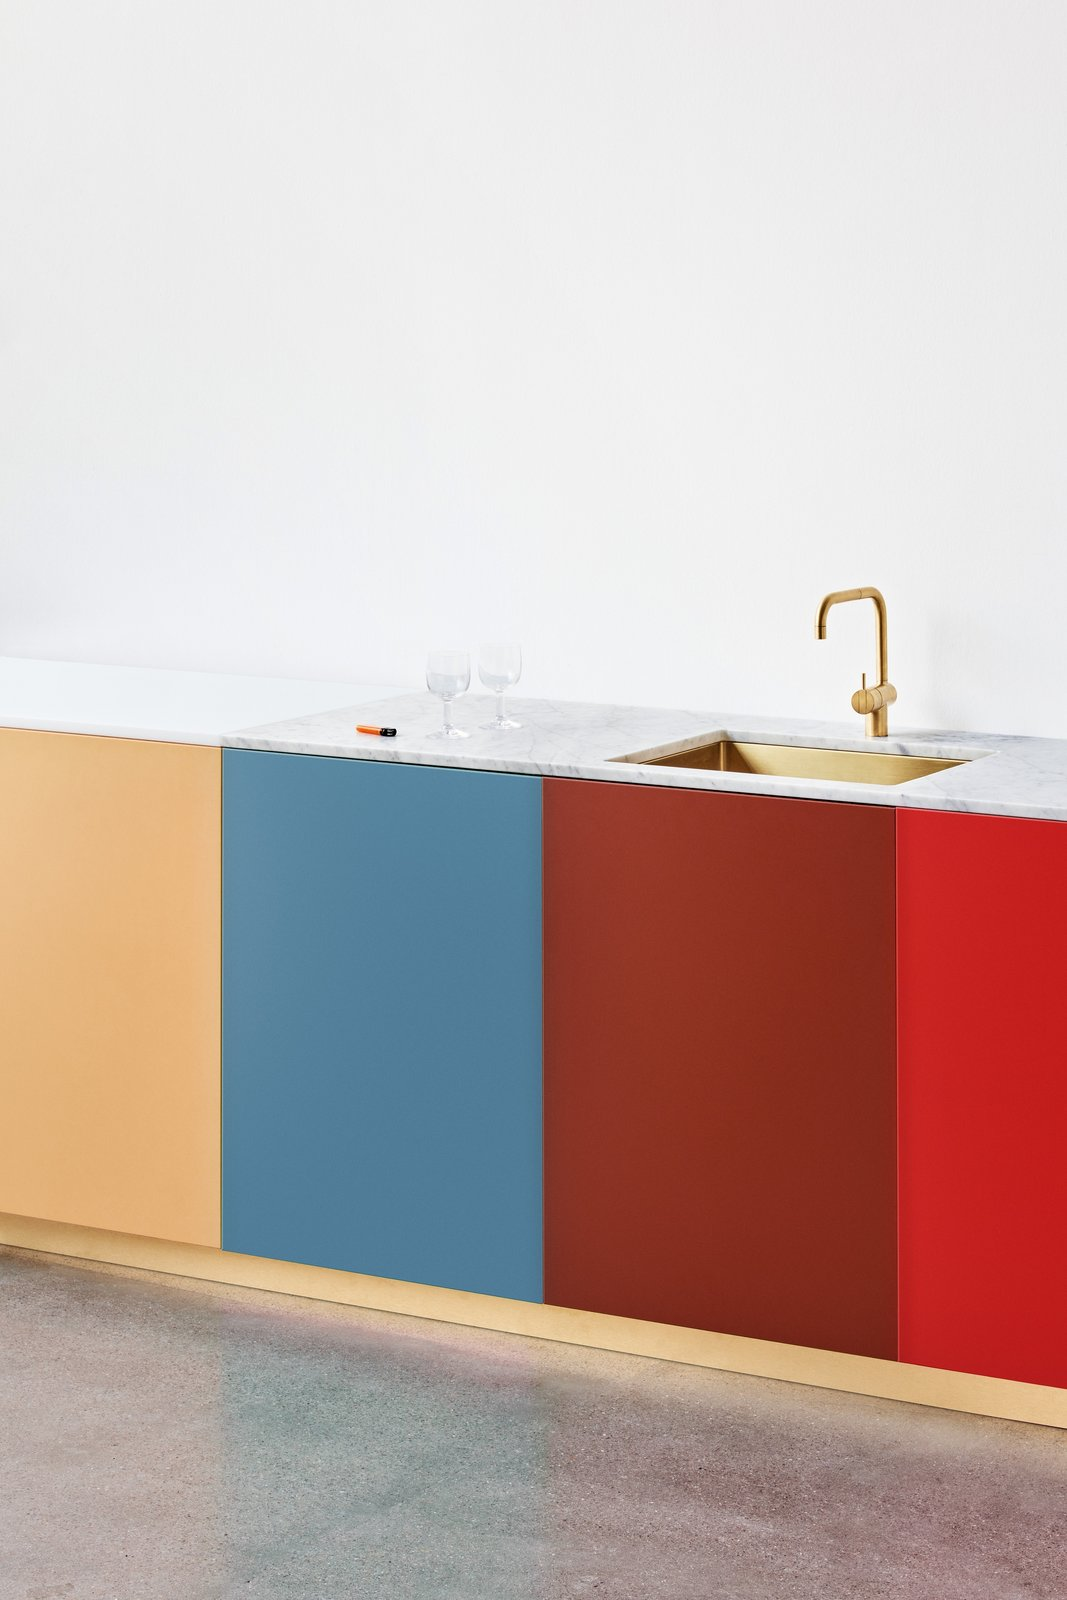 Kitchen, Undermount Sink, Concrete Floor, Marble Counter, and Colorful Cabinet The bright, bold panels are paired with classic features like marble countertops and playful on-trend elements like a brass faucet and sink.  Best Photos from Get a Designer Kitchen on an IKEA Budget With Reform's New Fronts and Tops